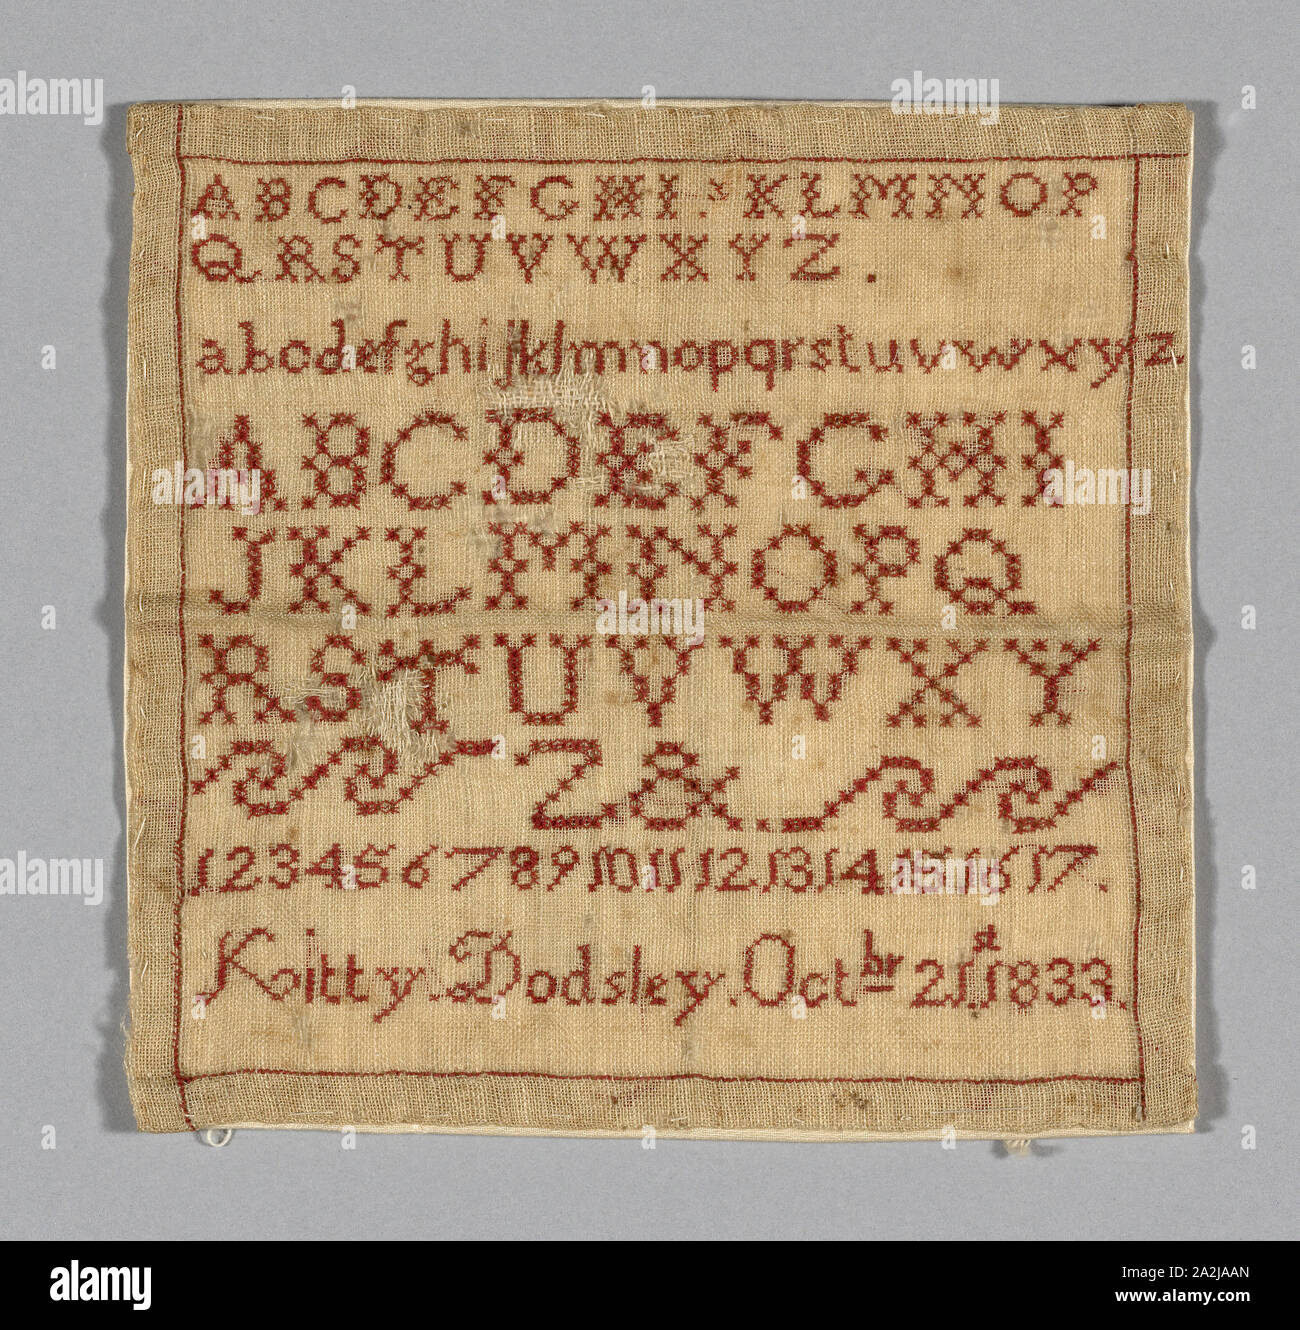 Sampler, 1833, Kitty (née Dodsley) Marriott Moffatt (English, 1825-1902), England, United States, Tiffany cloth embroidered with red silk, 15 x 16 cm (6 x 6 1/4 in Stock Photo